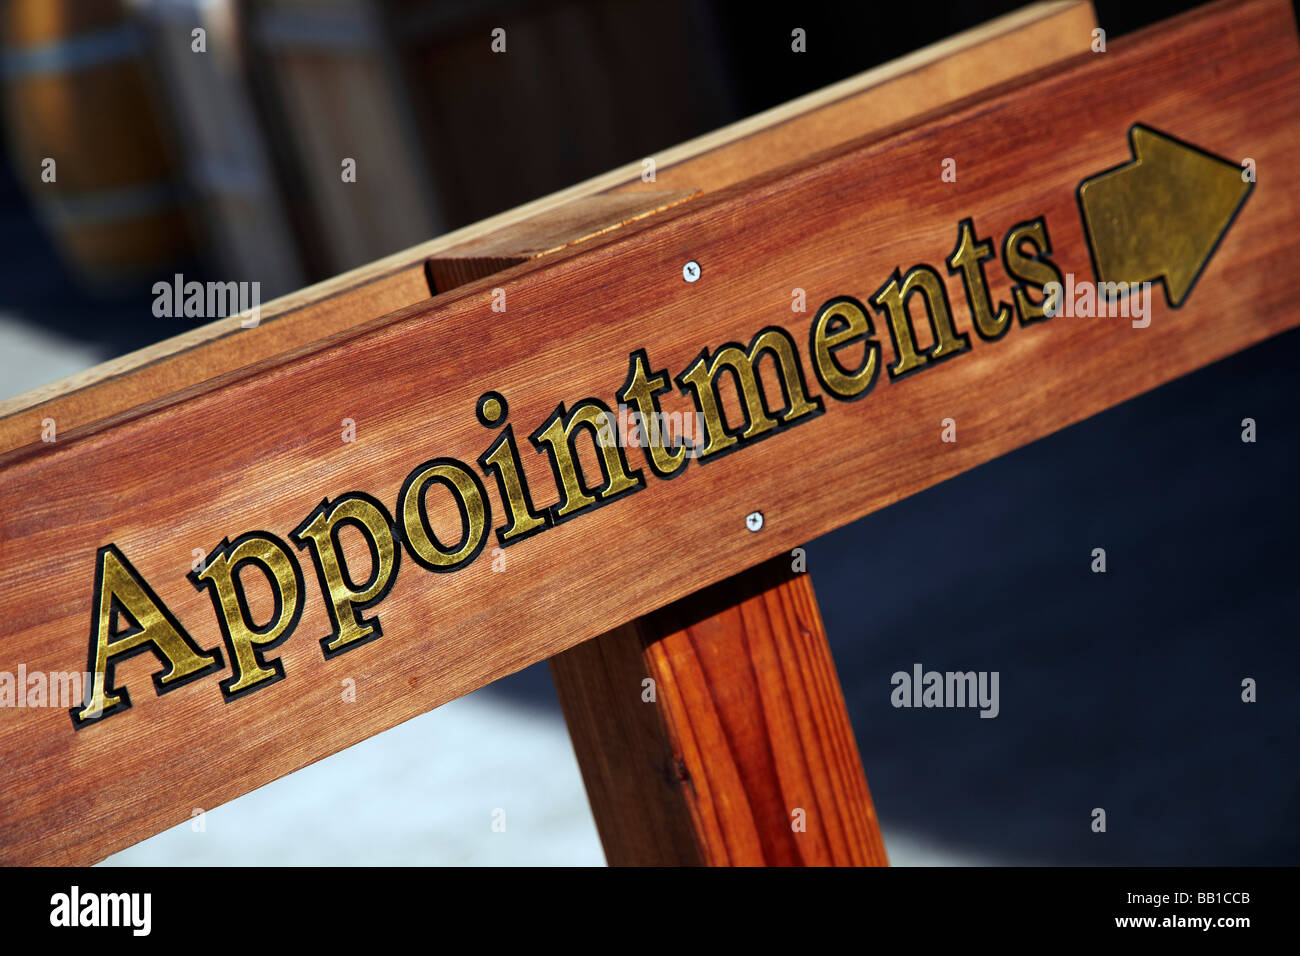 appointments sign with arrow - Stock Image